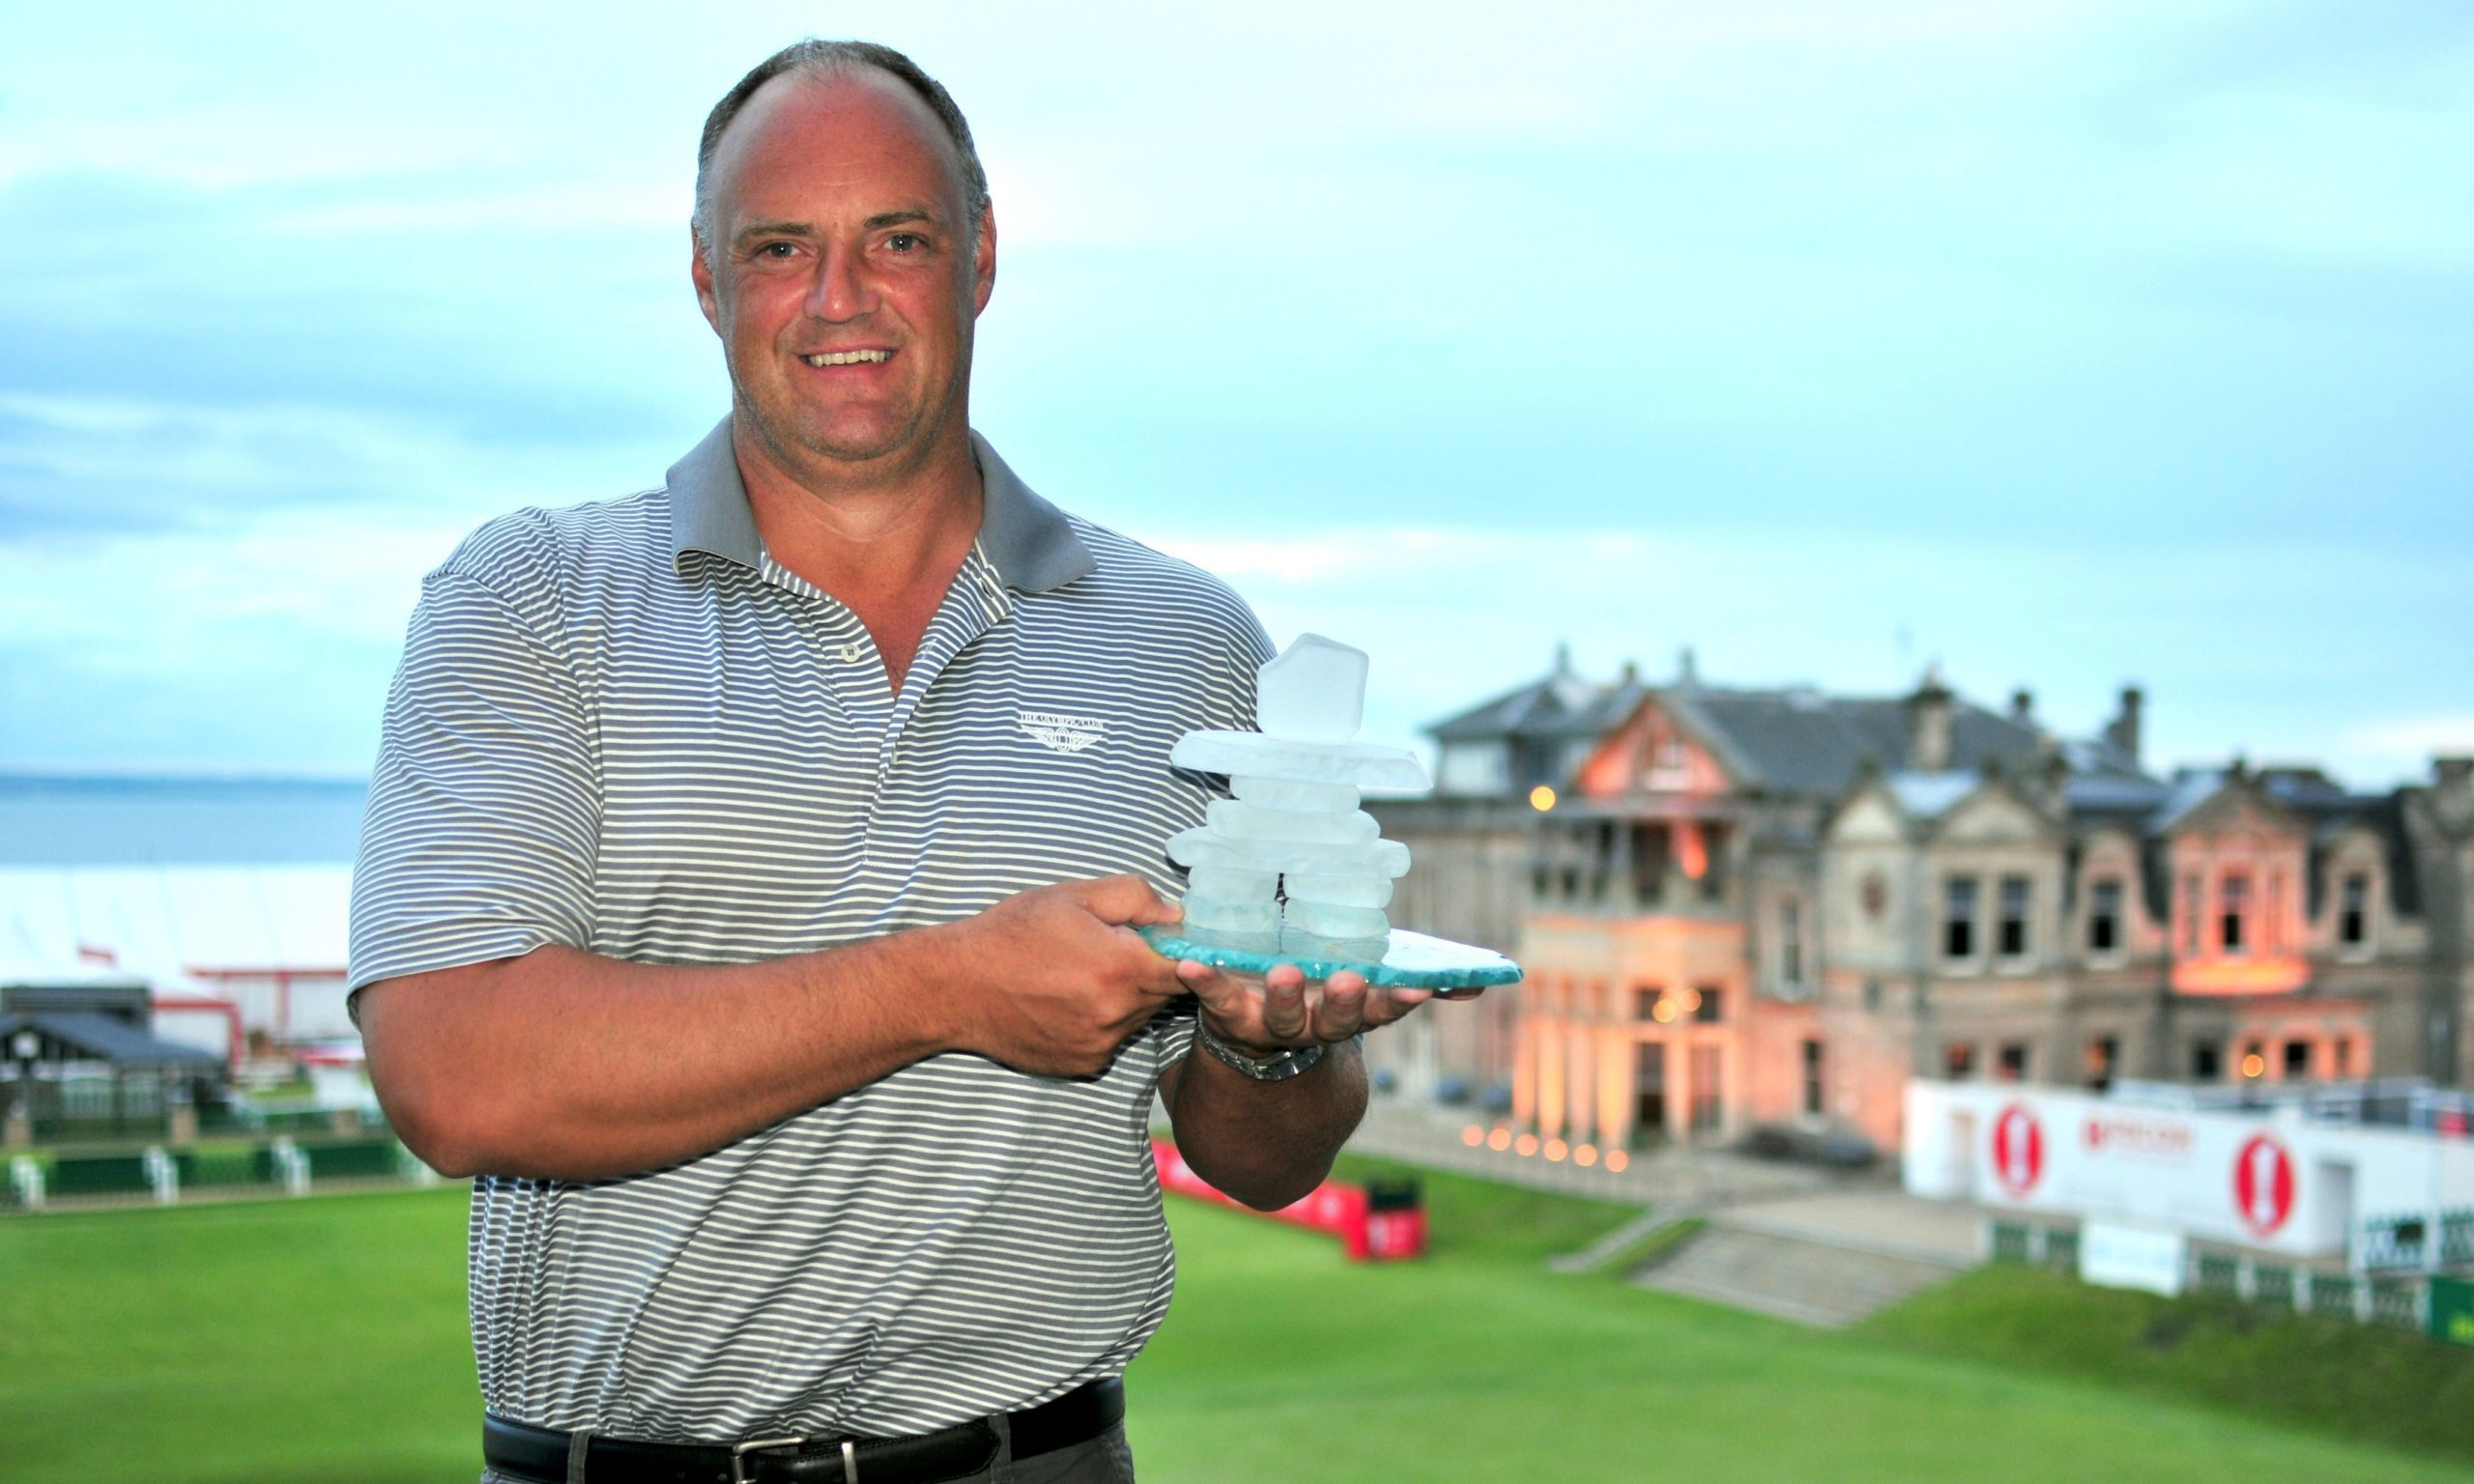 Graham Proctor, founder and CEO of St Andrews Legacy, overlooks the Old Course holding an Inukshuk, an Inuit symbol of unity and purpose, presented to him by Soldier On Canada at the launch of St Andrews Legacy in July 2013.